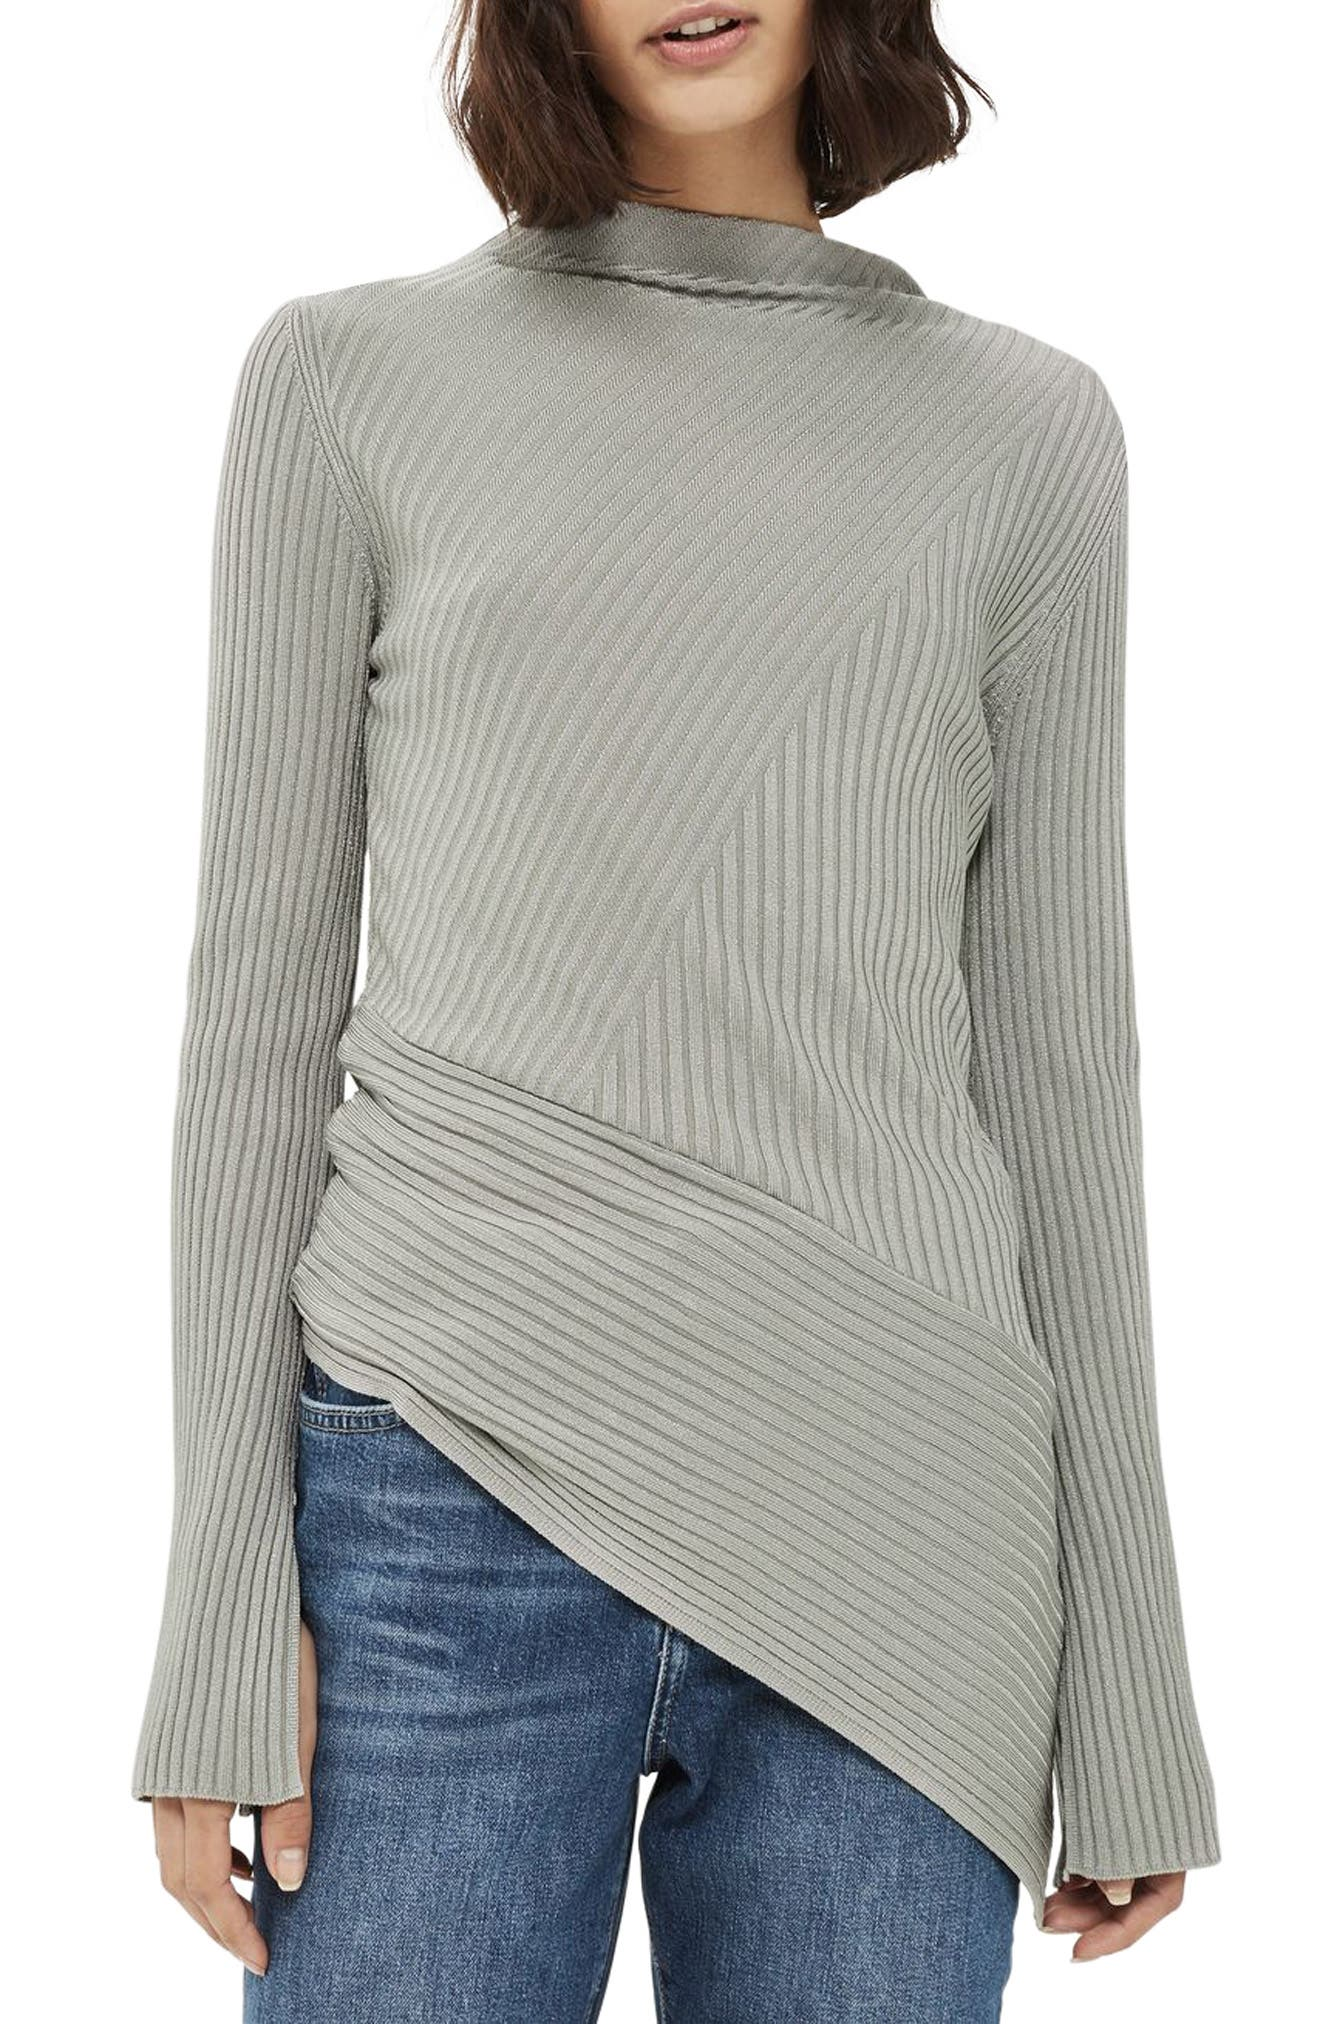 Topshop Asymmetrical Ribbed Sweater